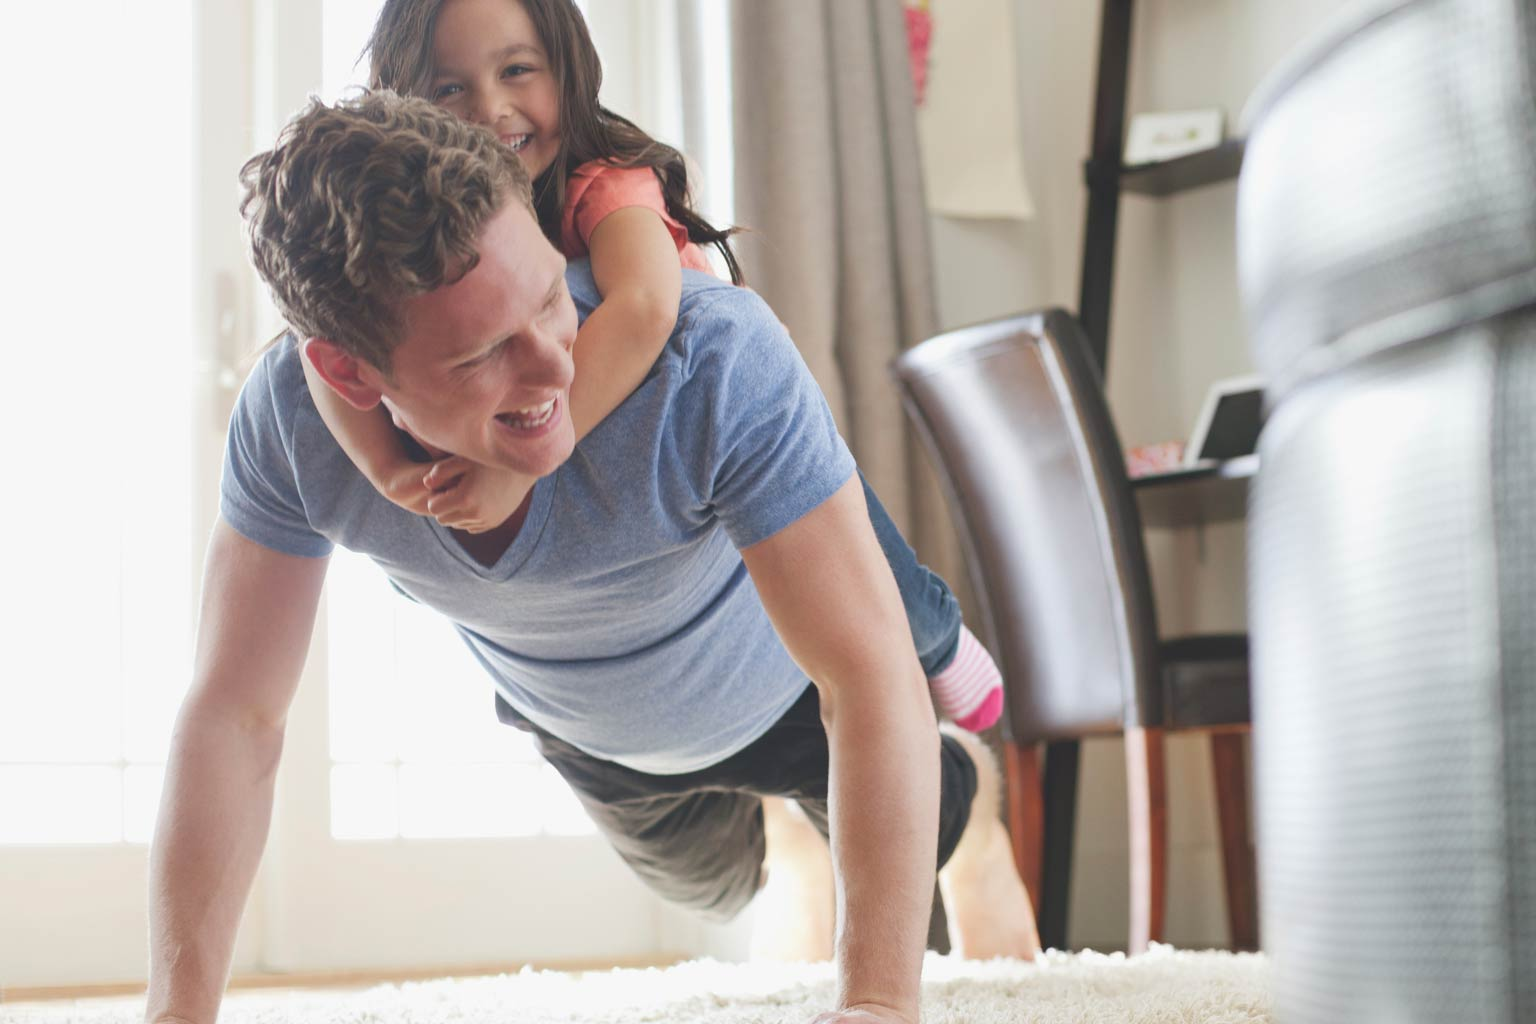 Man doing a pushup with daughter on his back at home